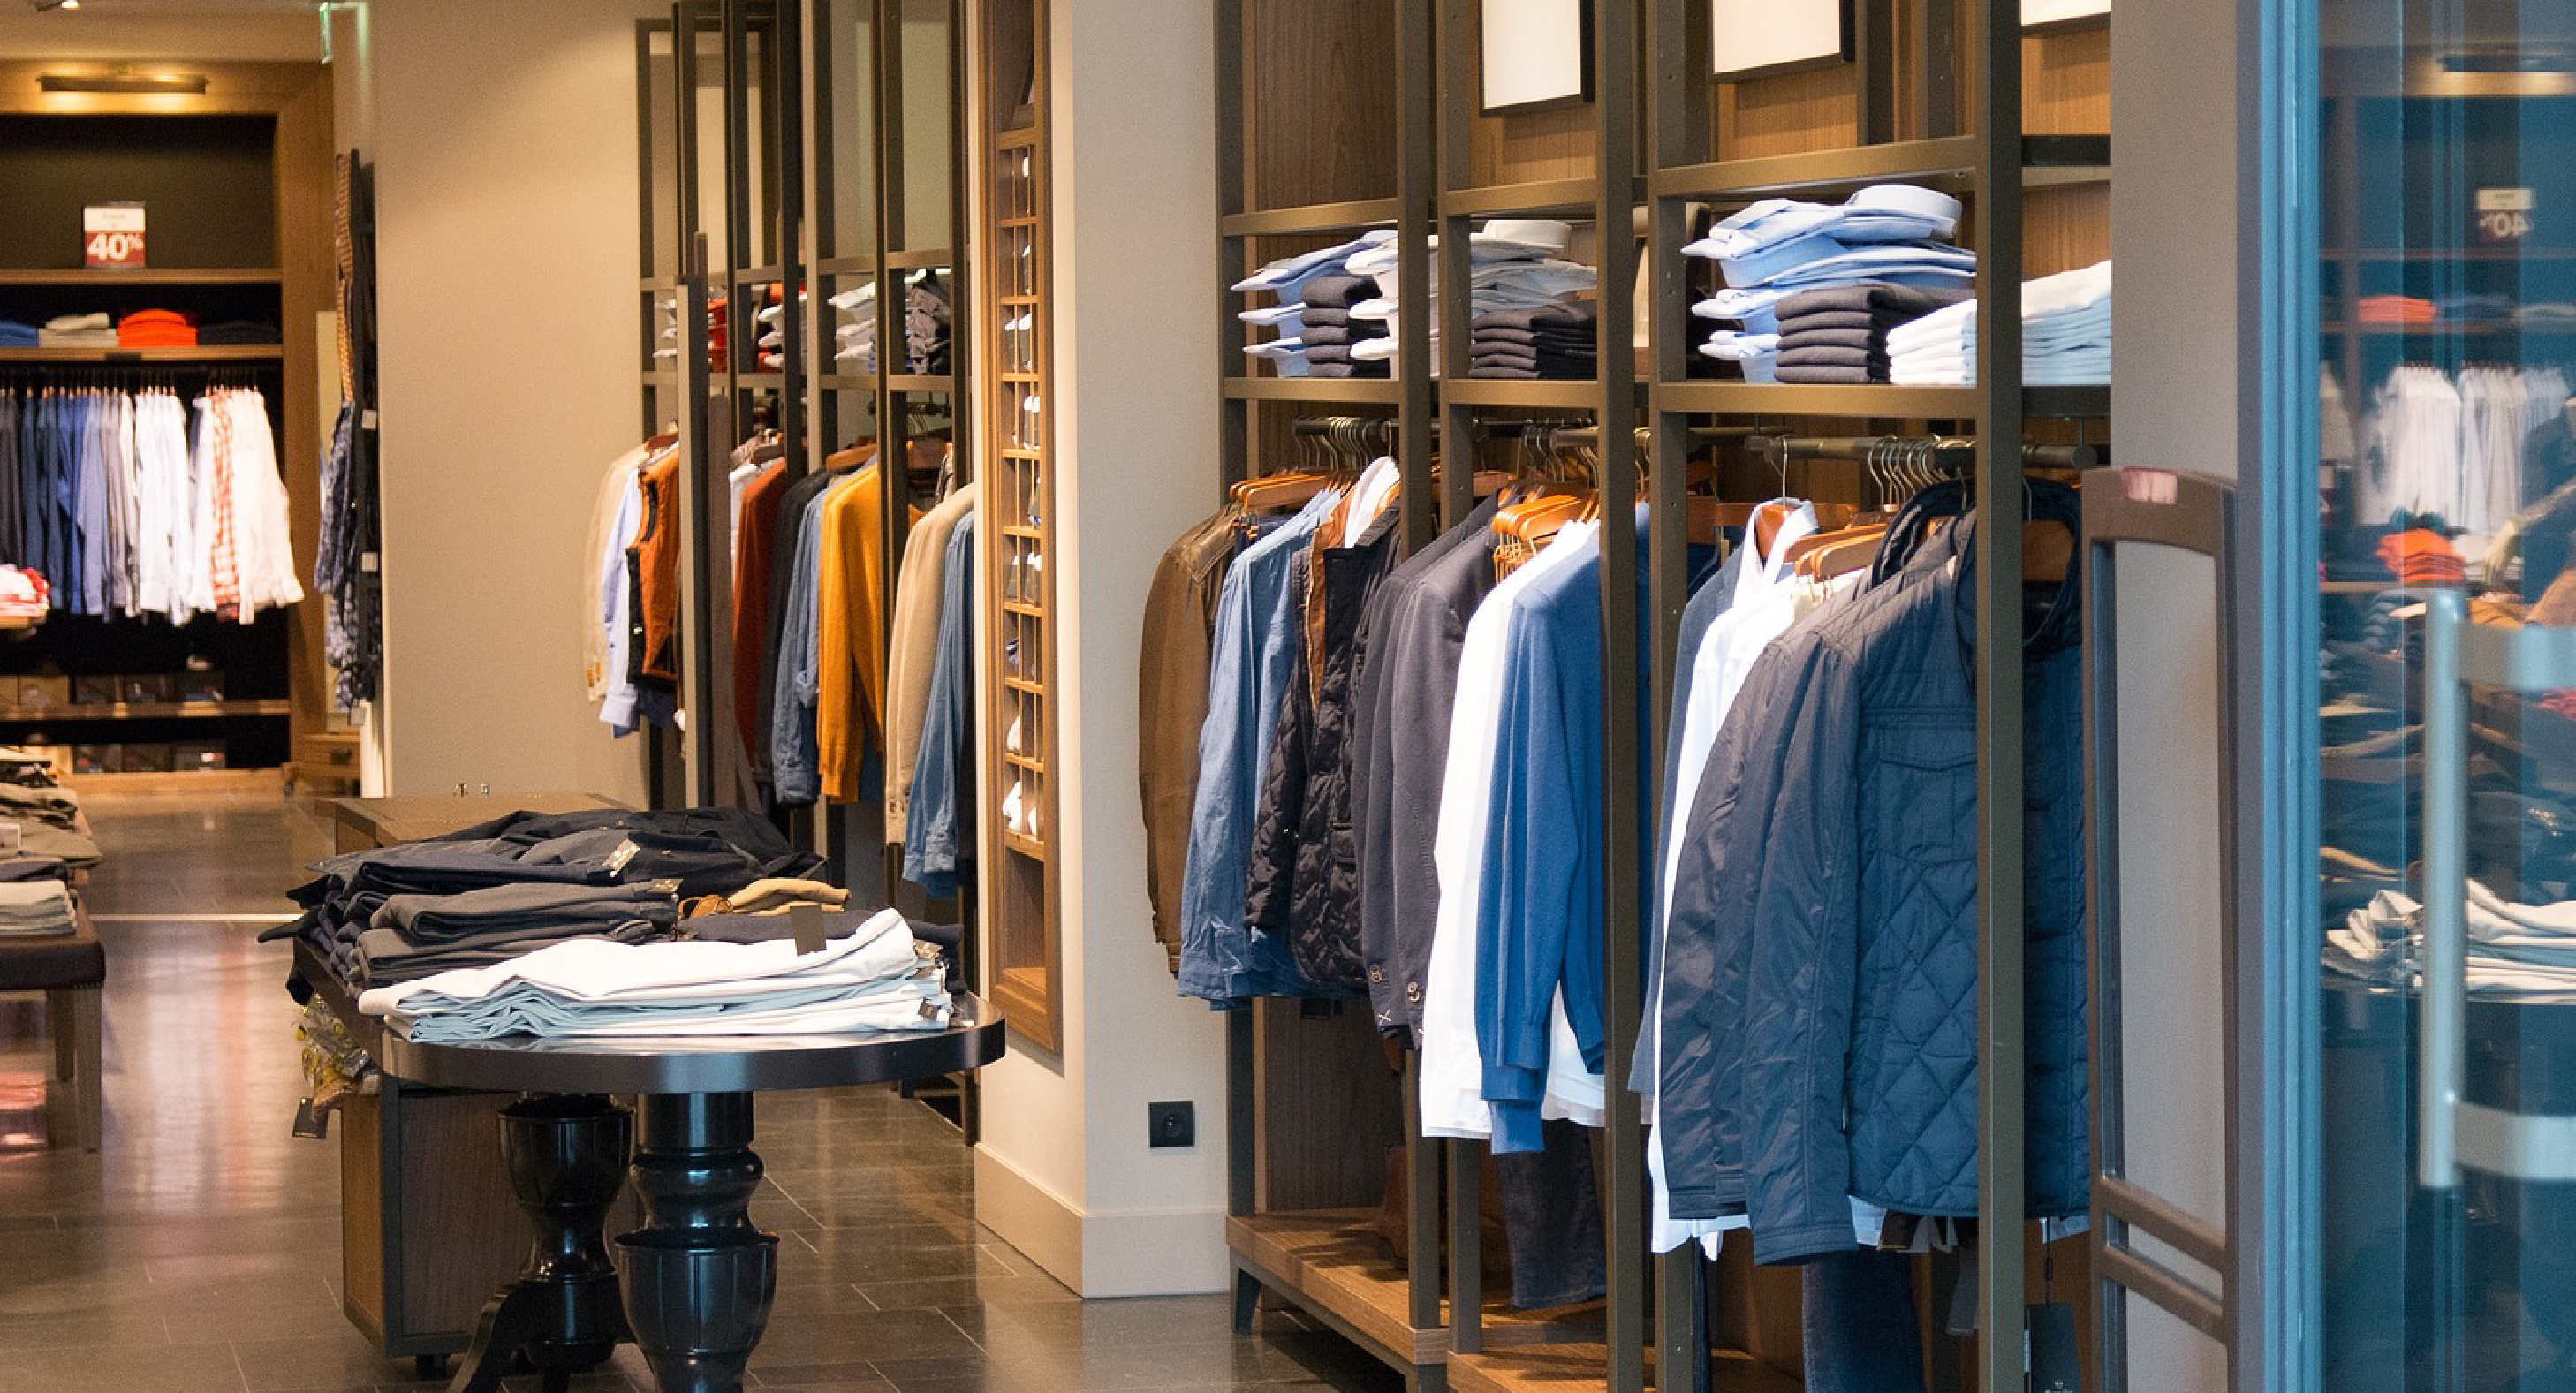 Using Growth Capital in your Clothing Business